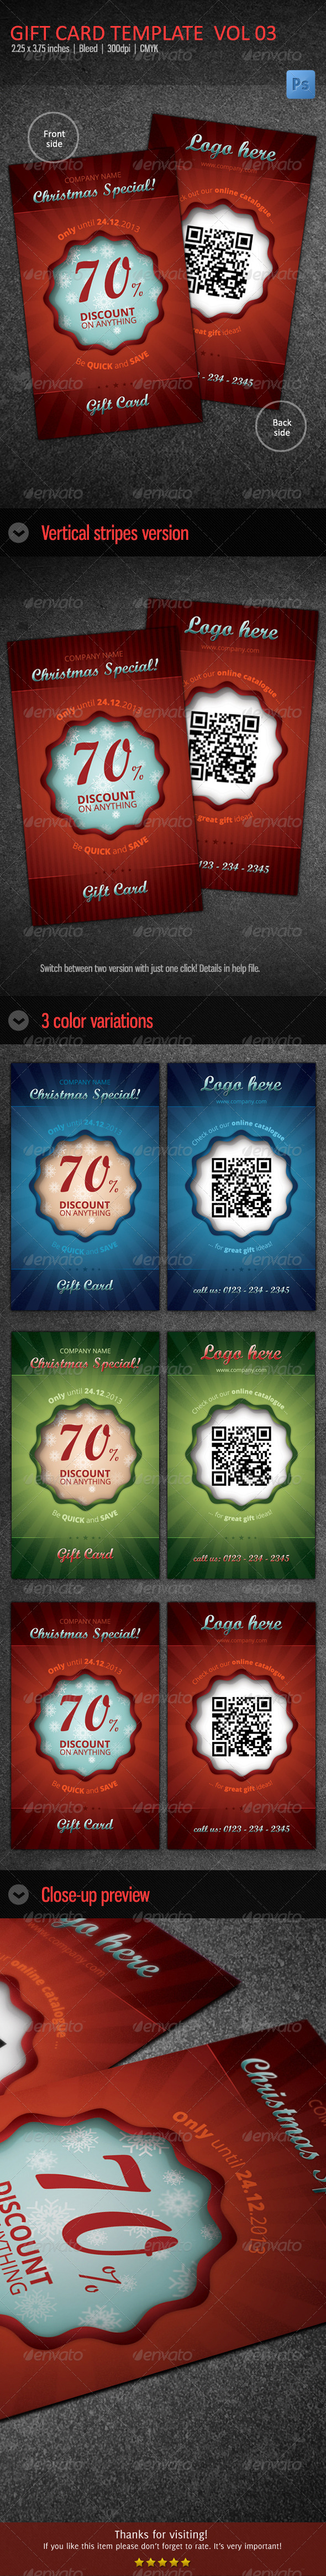 Christmas Gift Card / Voucher vol 03